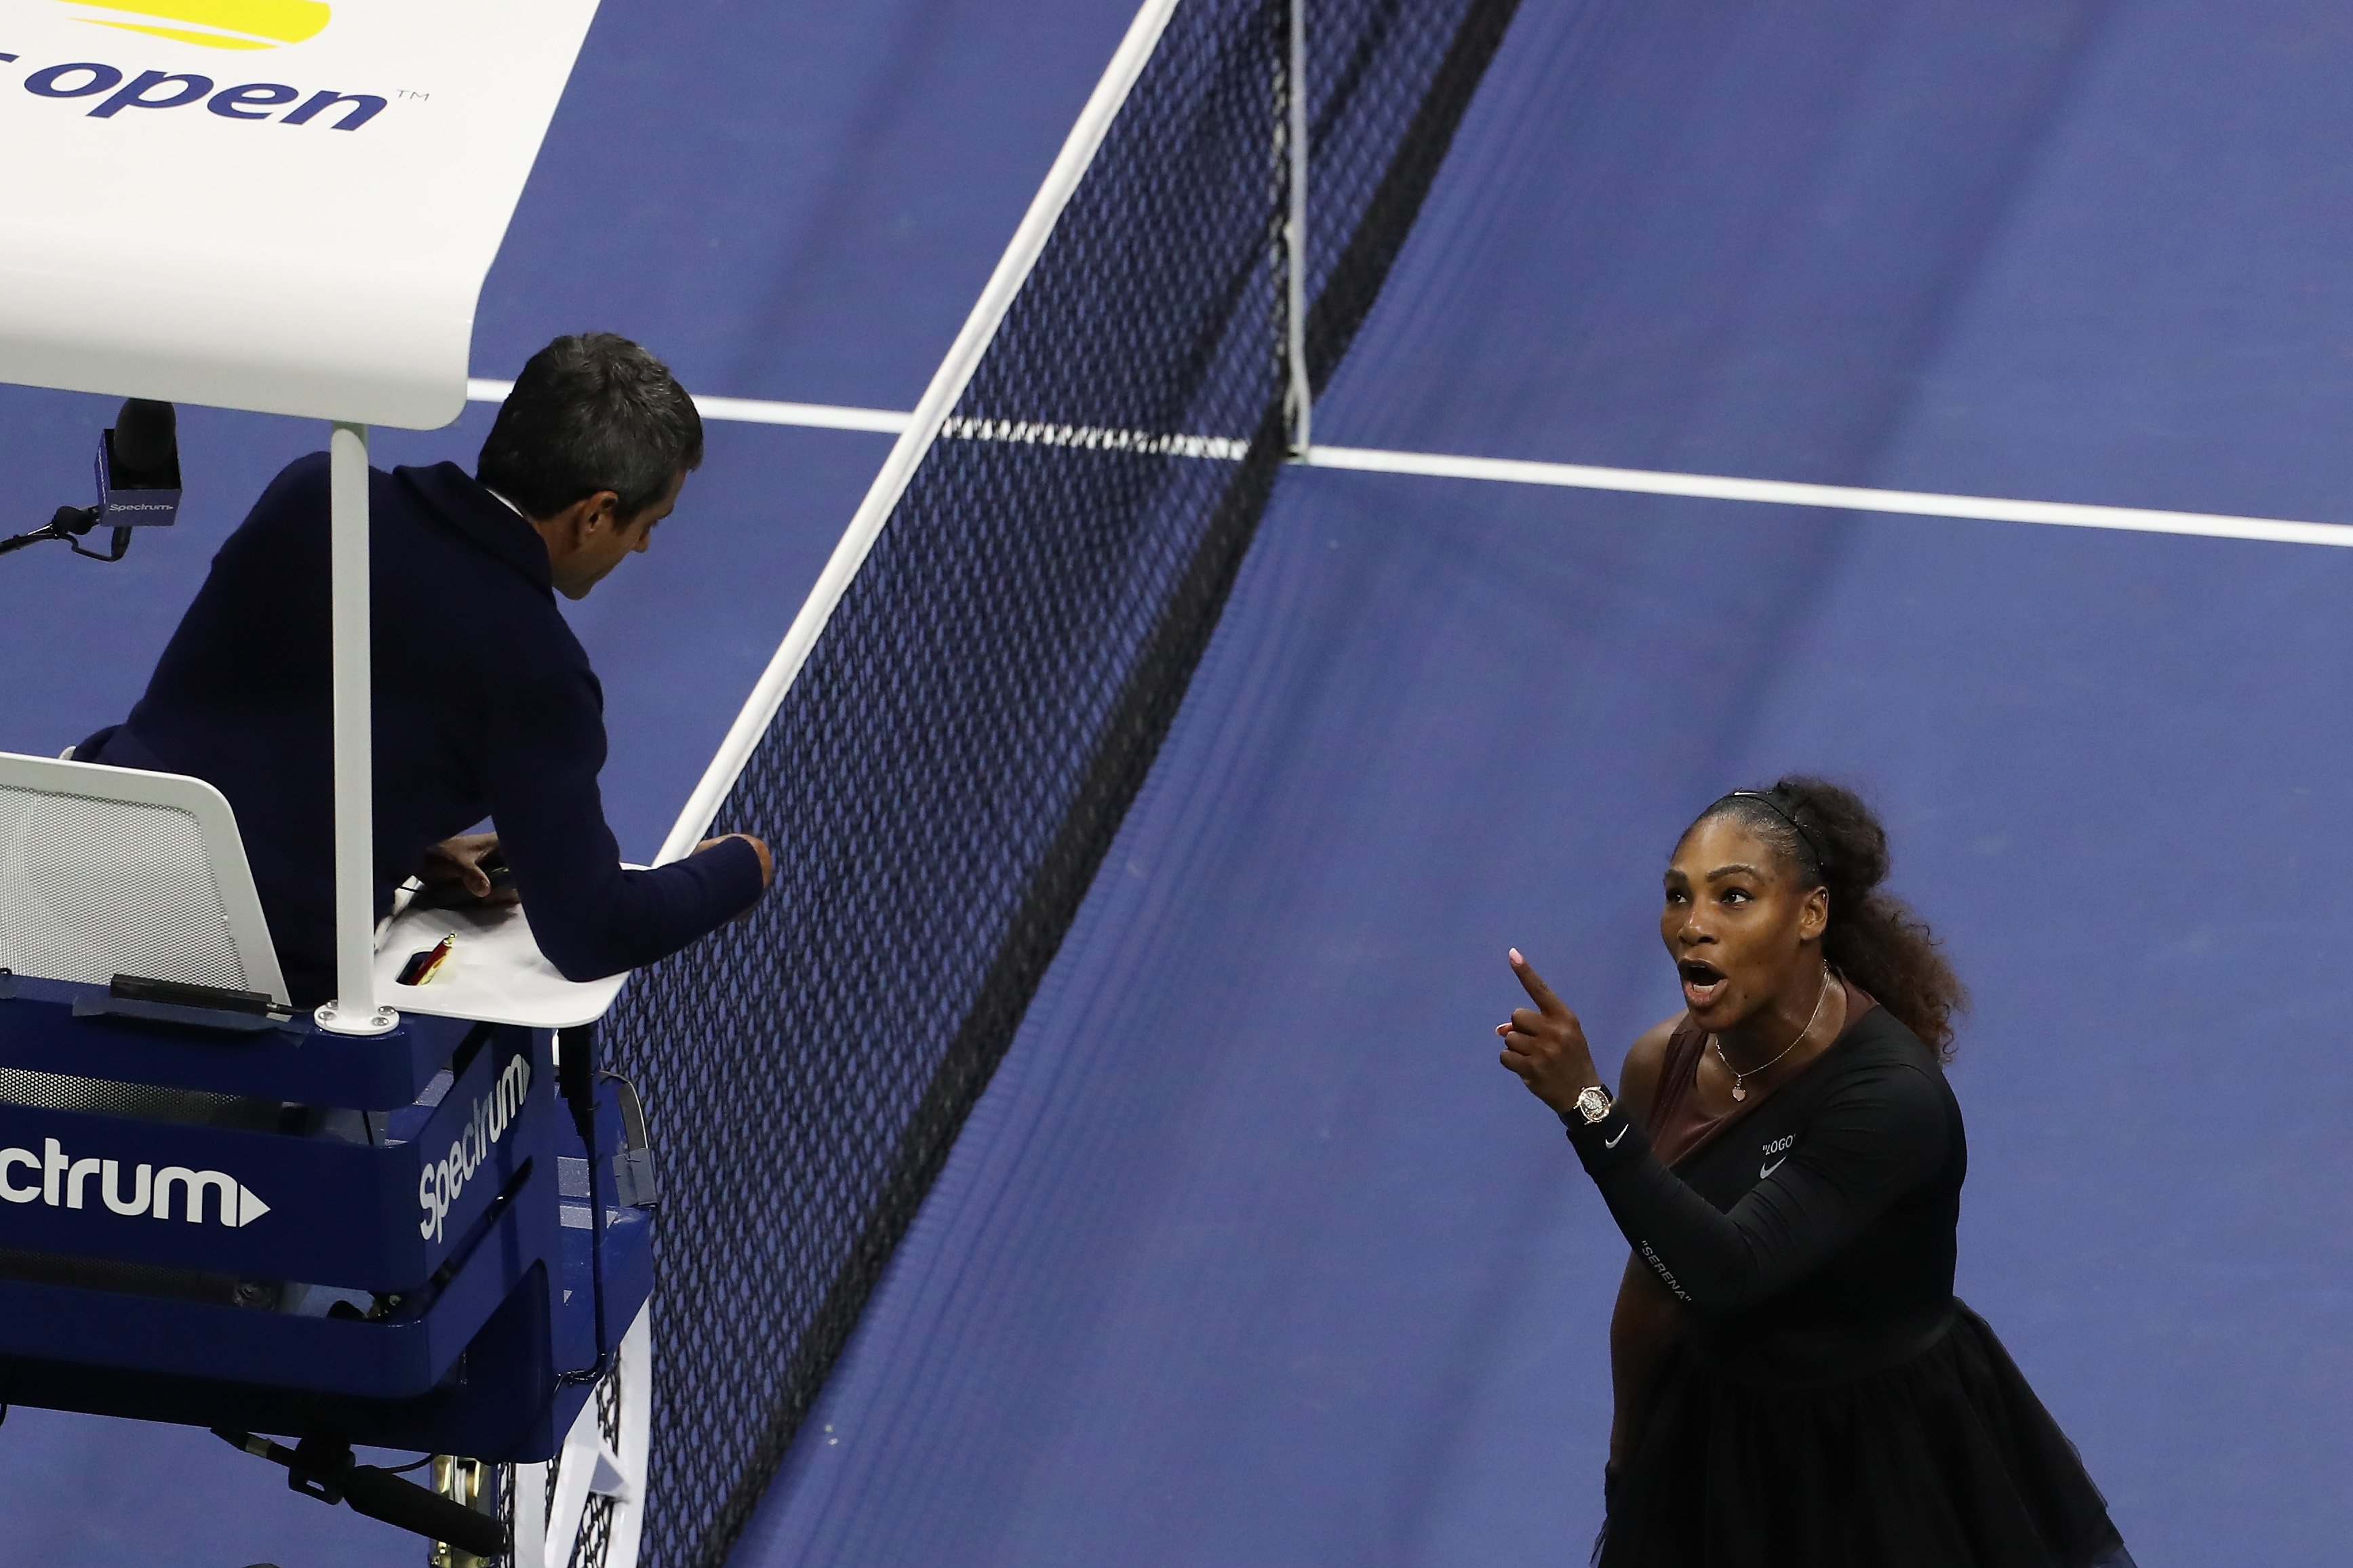 Serena Williams debates with the chair umpire Carlos Ramos during US Open 2018 women's final match on Sept. 8, 2018 in New York.  Photo: Getty Images